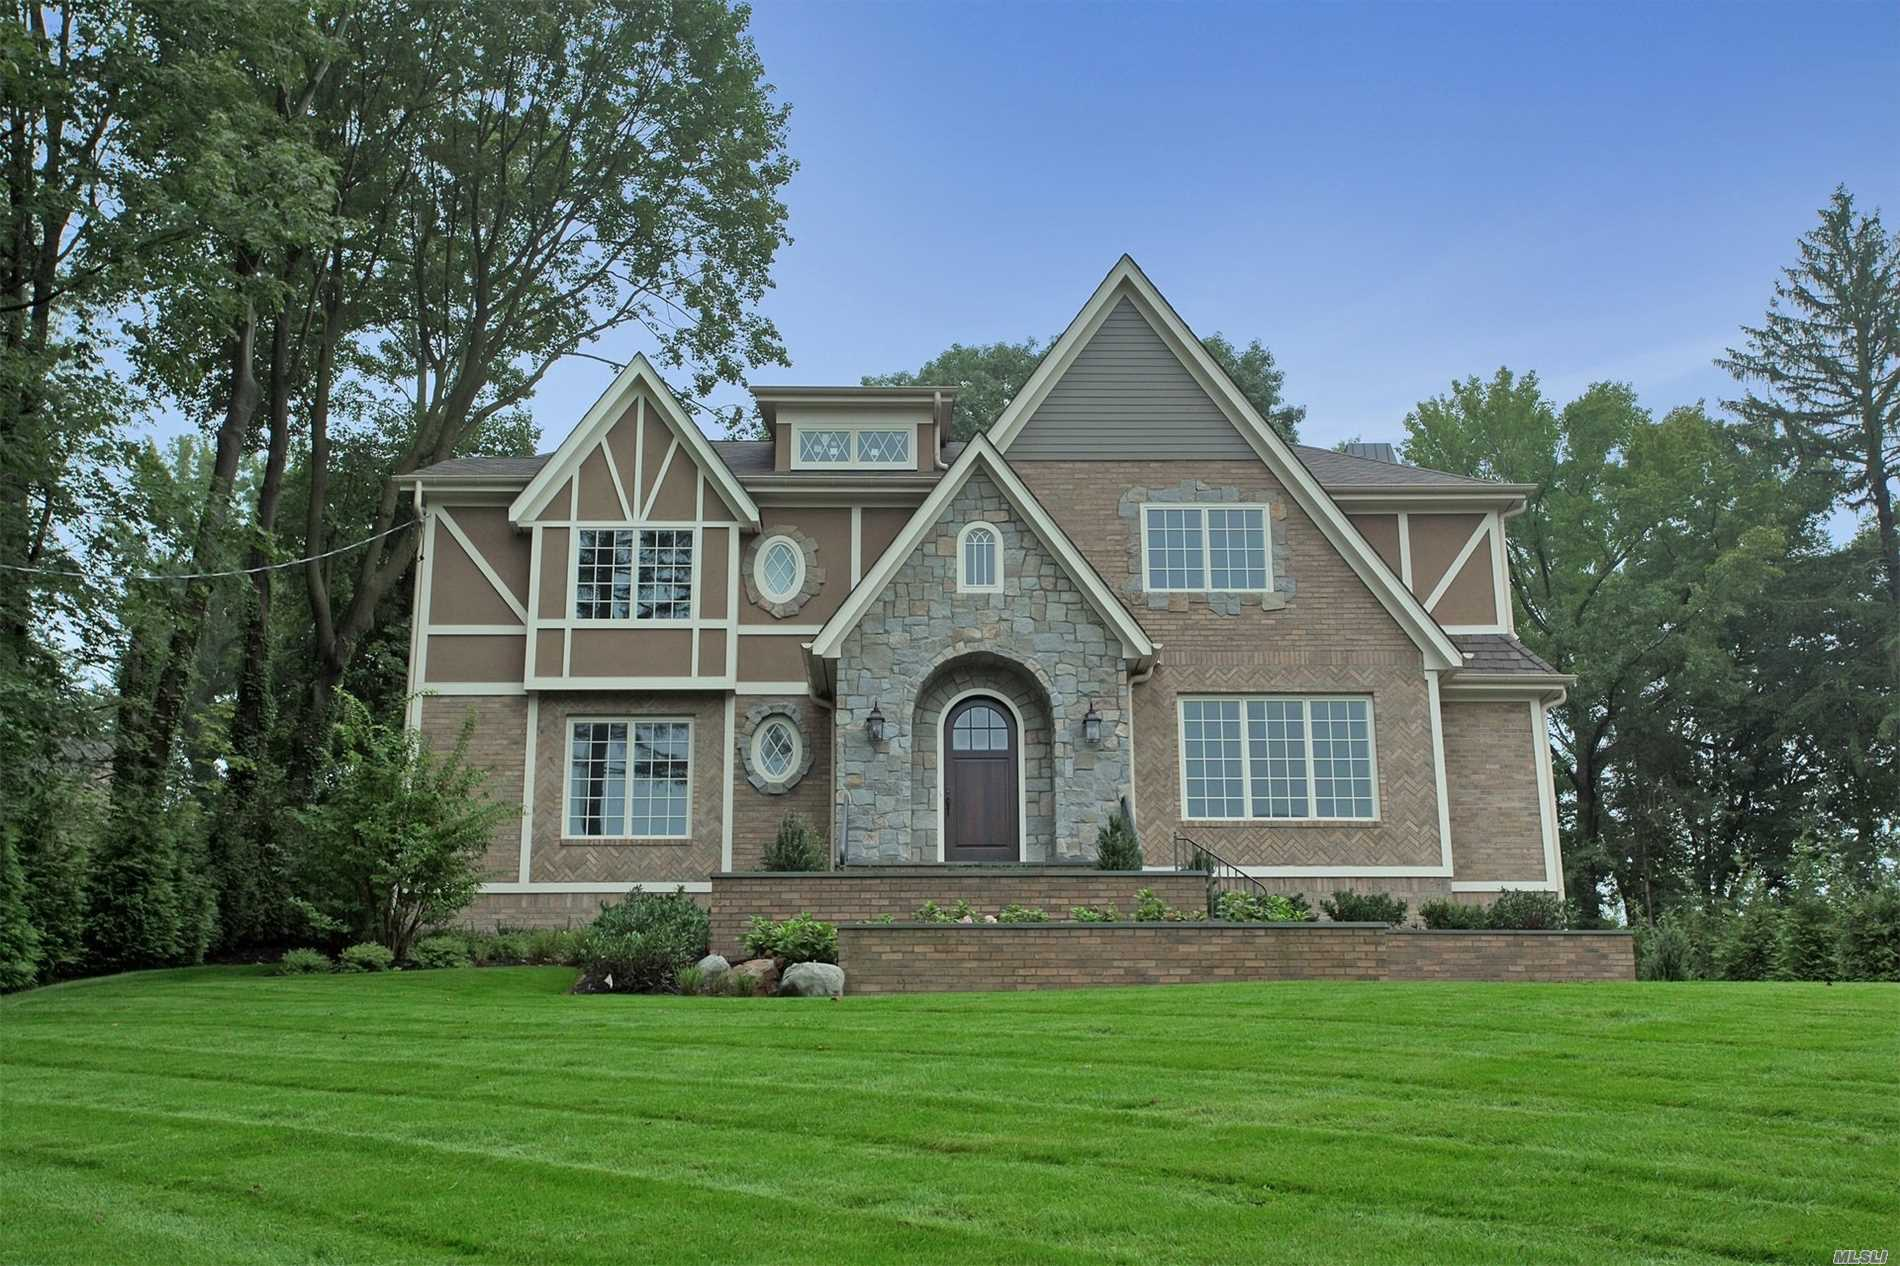 Stunning New Construction In Plandome Manor. Colonial With 5 Bedrooms, 4.5 Baths, Splendid Property.